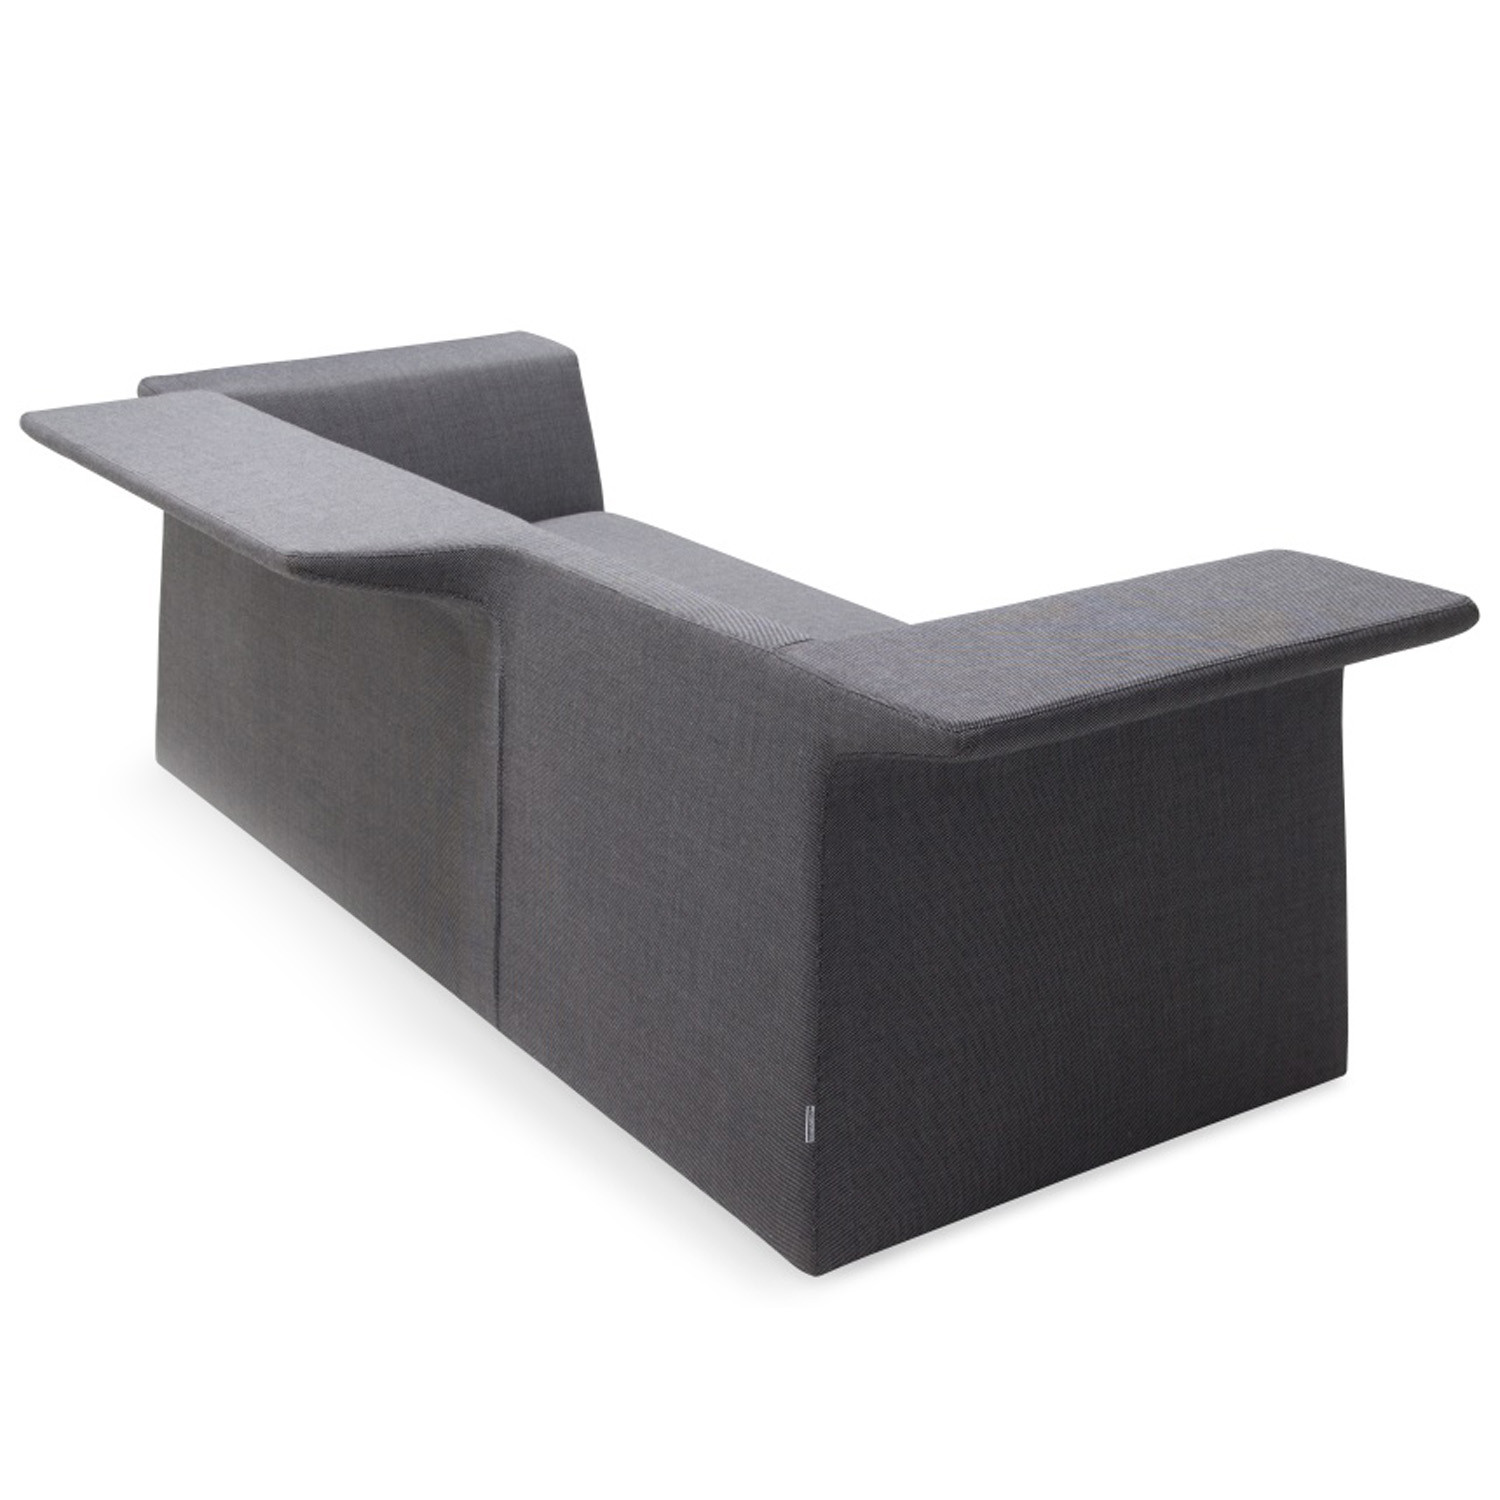 Ikaros Soft Seating for Agile Working